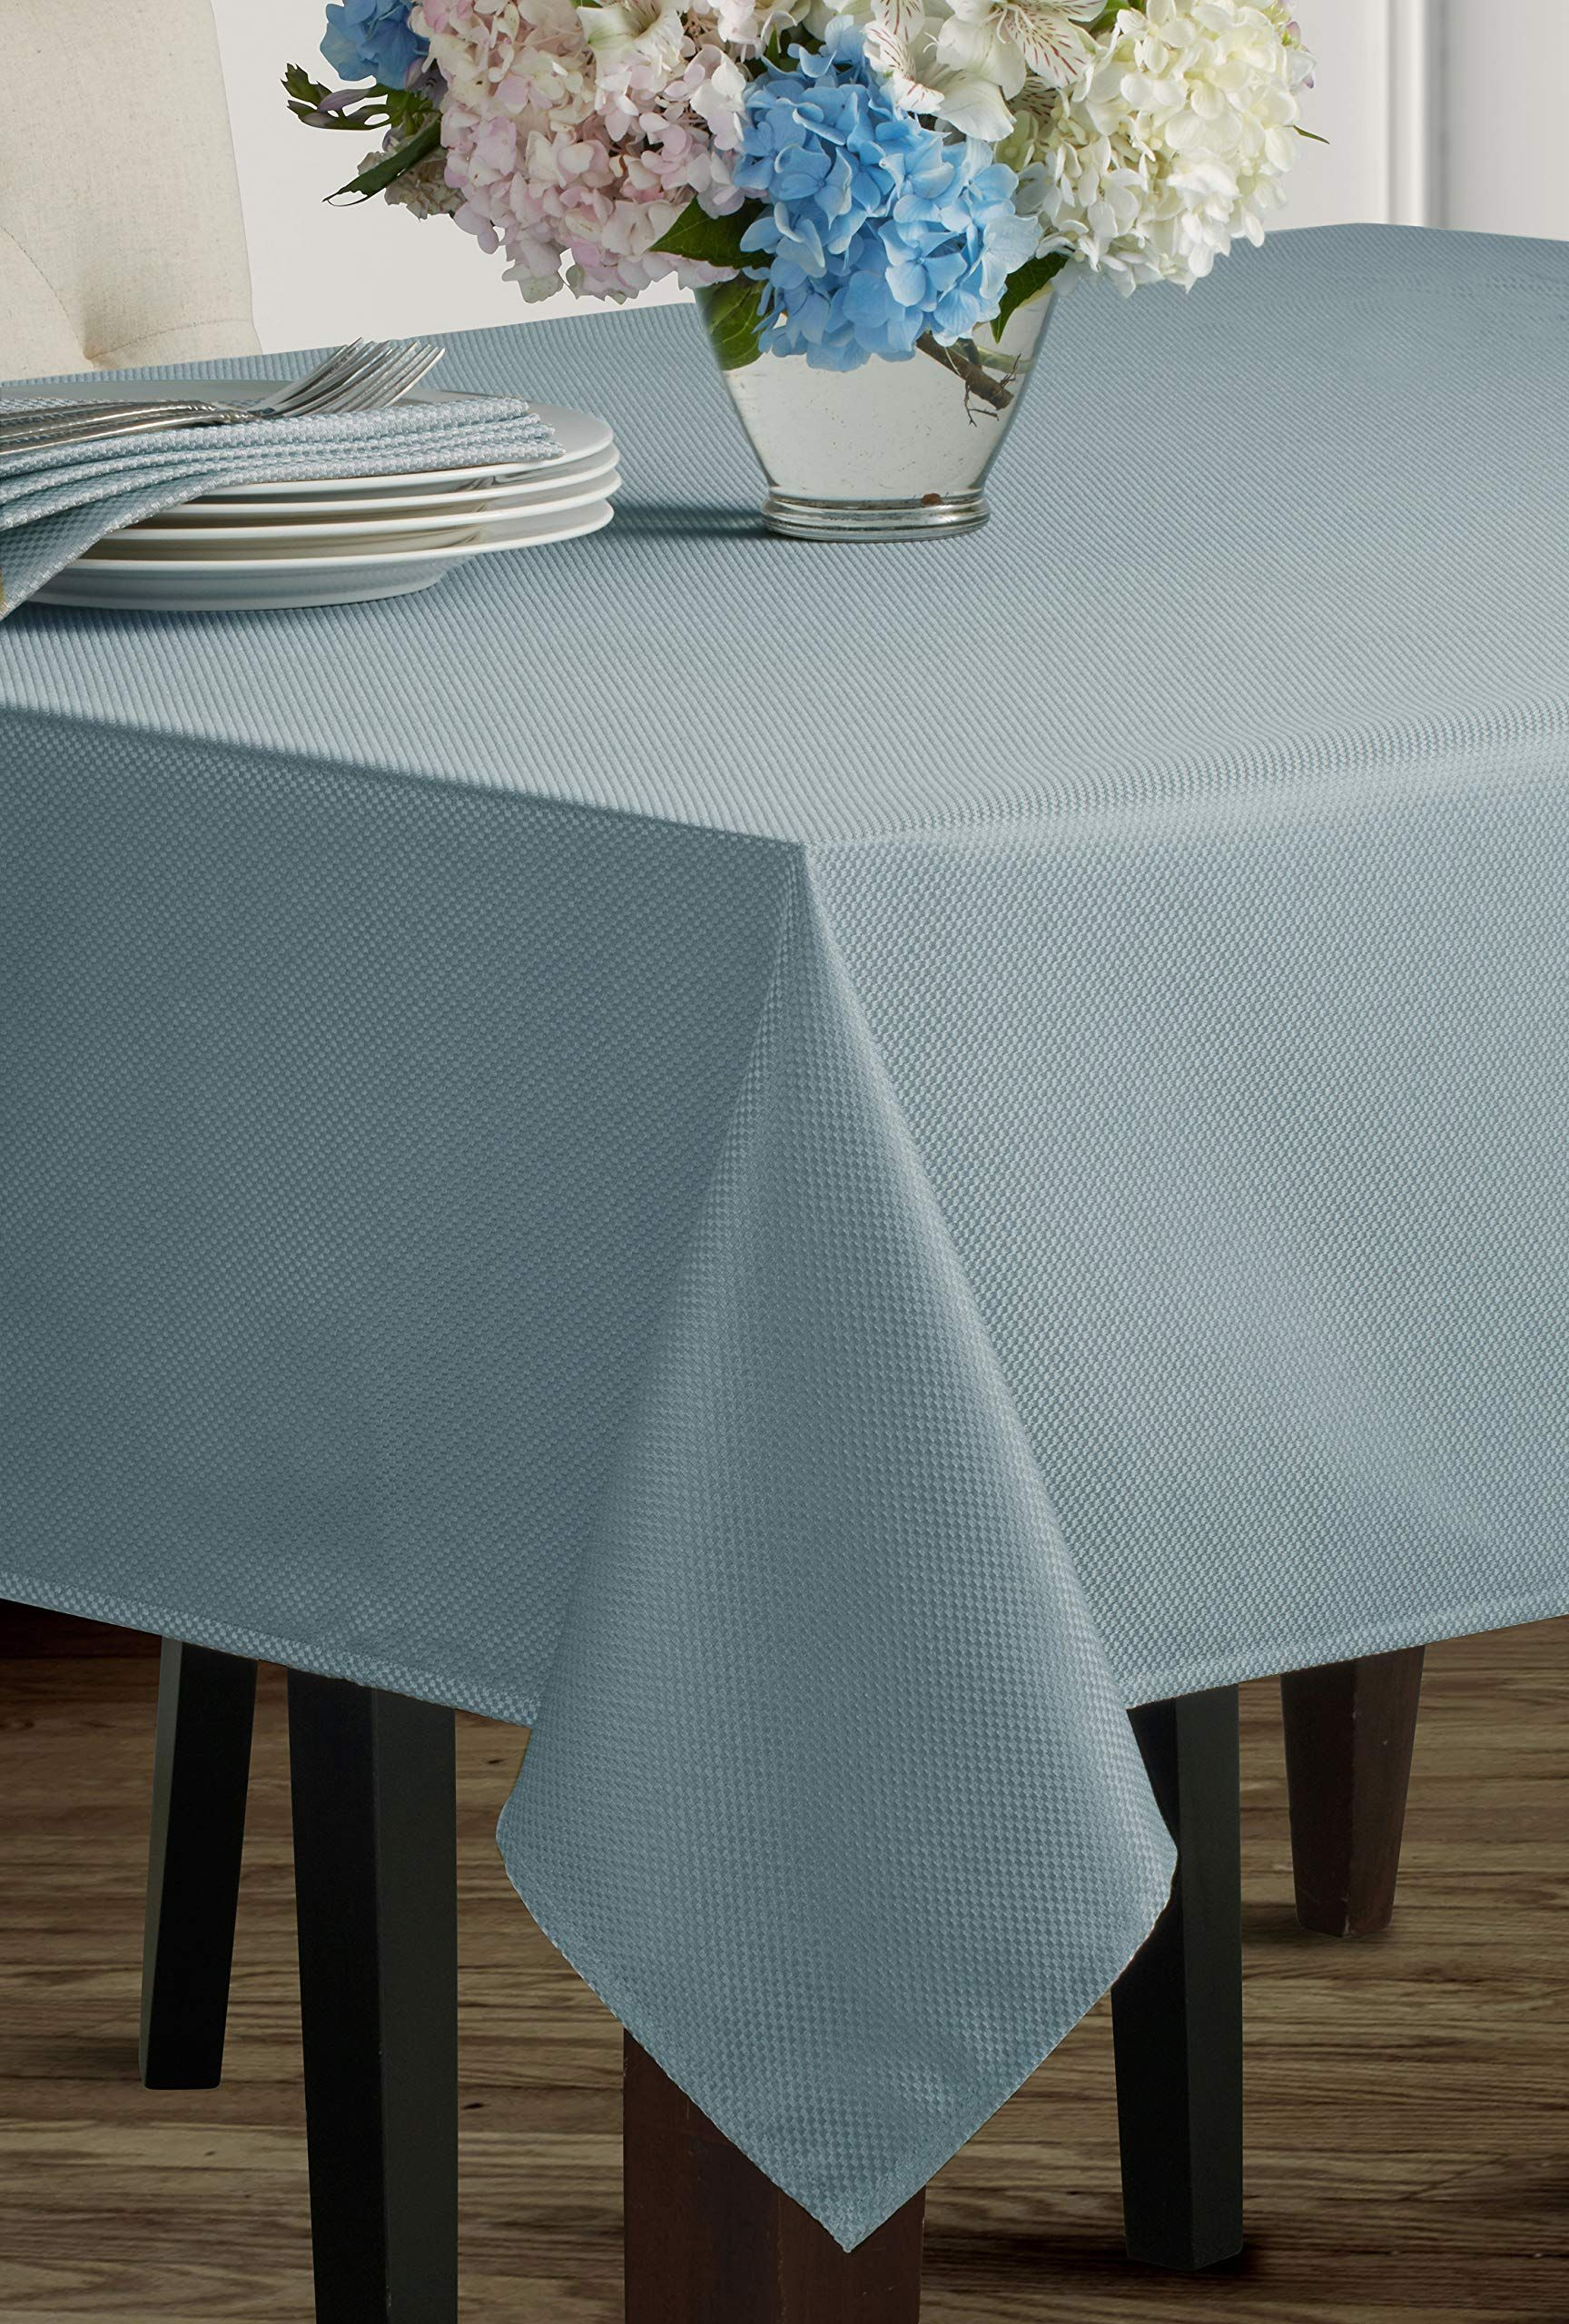 Benson Mills Beauvalle Extra Wide Spillproof Tablecloth 68 X 84